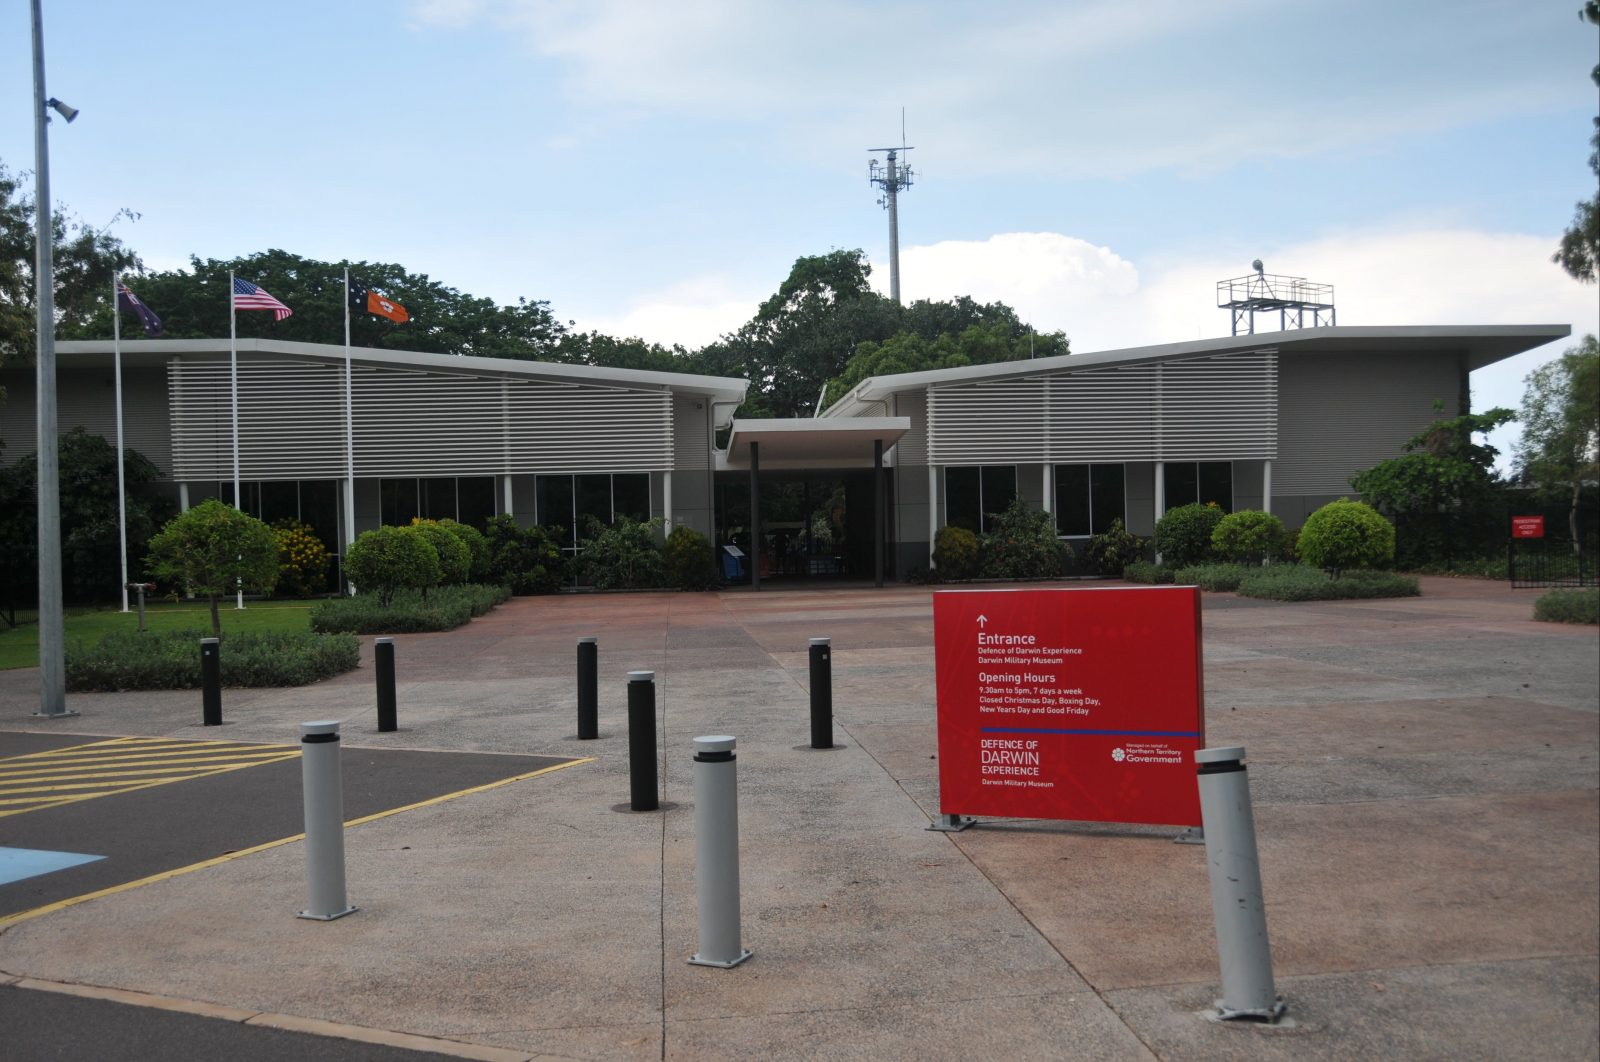 Entrance to the East Point Military Museum and the Defence of Darwin Experience at East Point. Both sites share a common entry and reception.